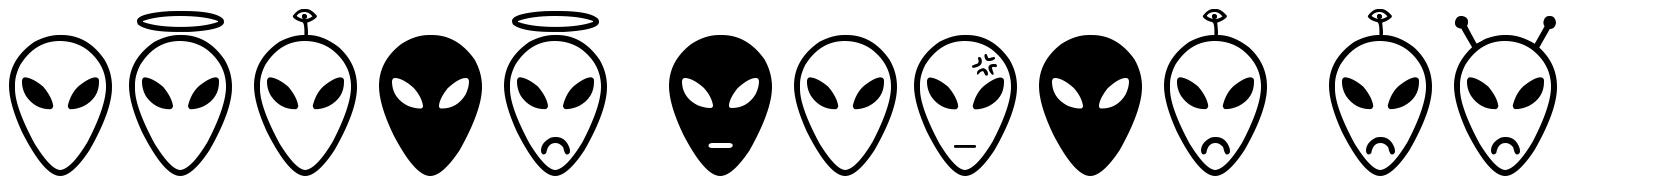 Alien Faces ST 字形